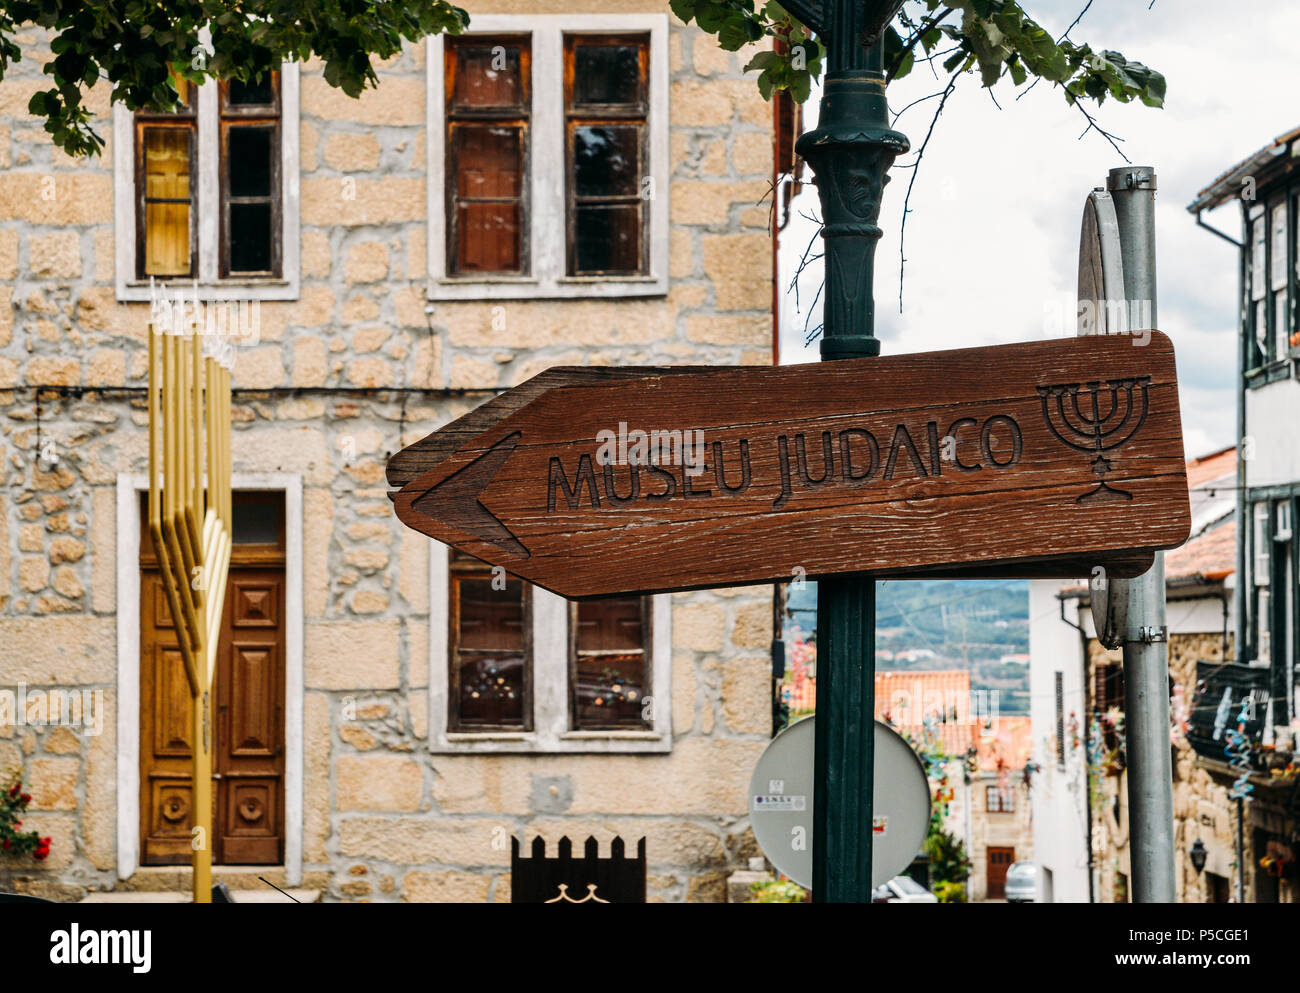 Sign pointing to the Jewish Museum of Belmonte, Museu Judaico de Belmonte which opened in 2005 - Stock Image